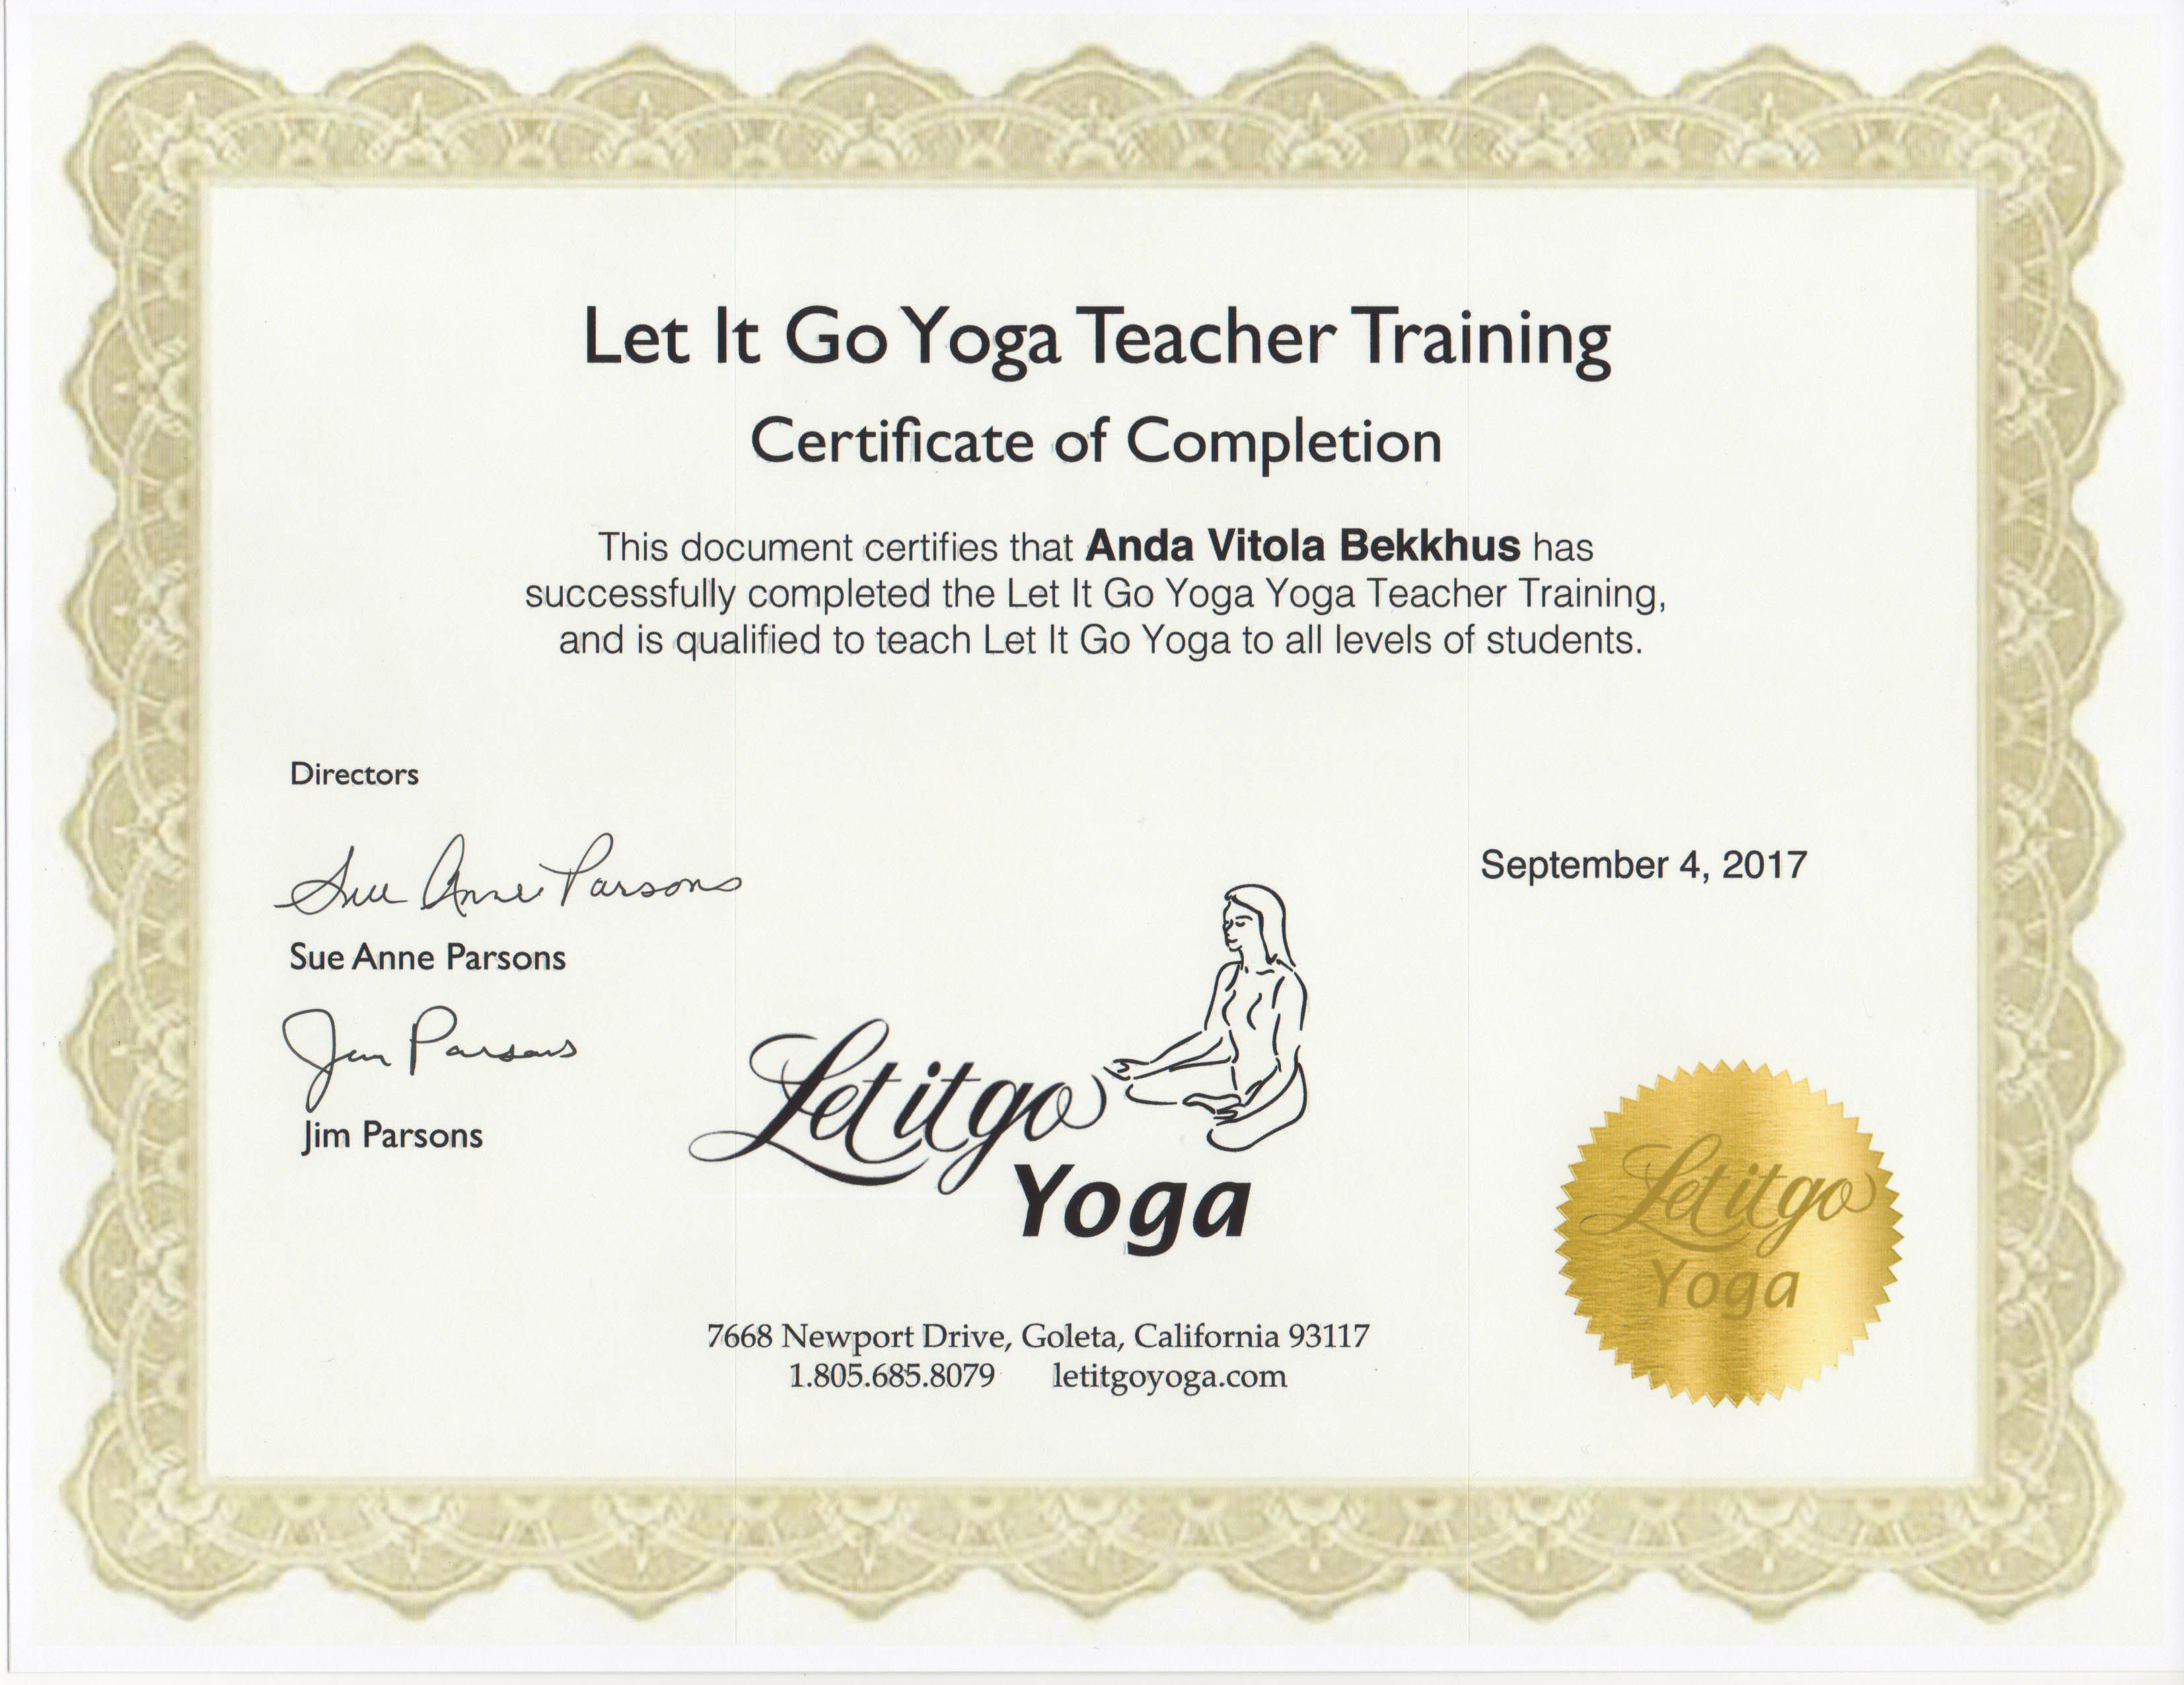 Yoga Teacher Training Let It Go Yoga